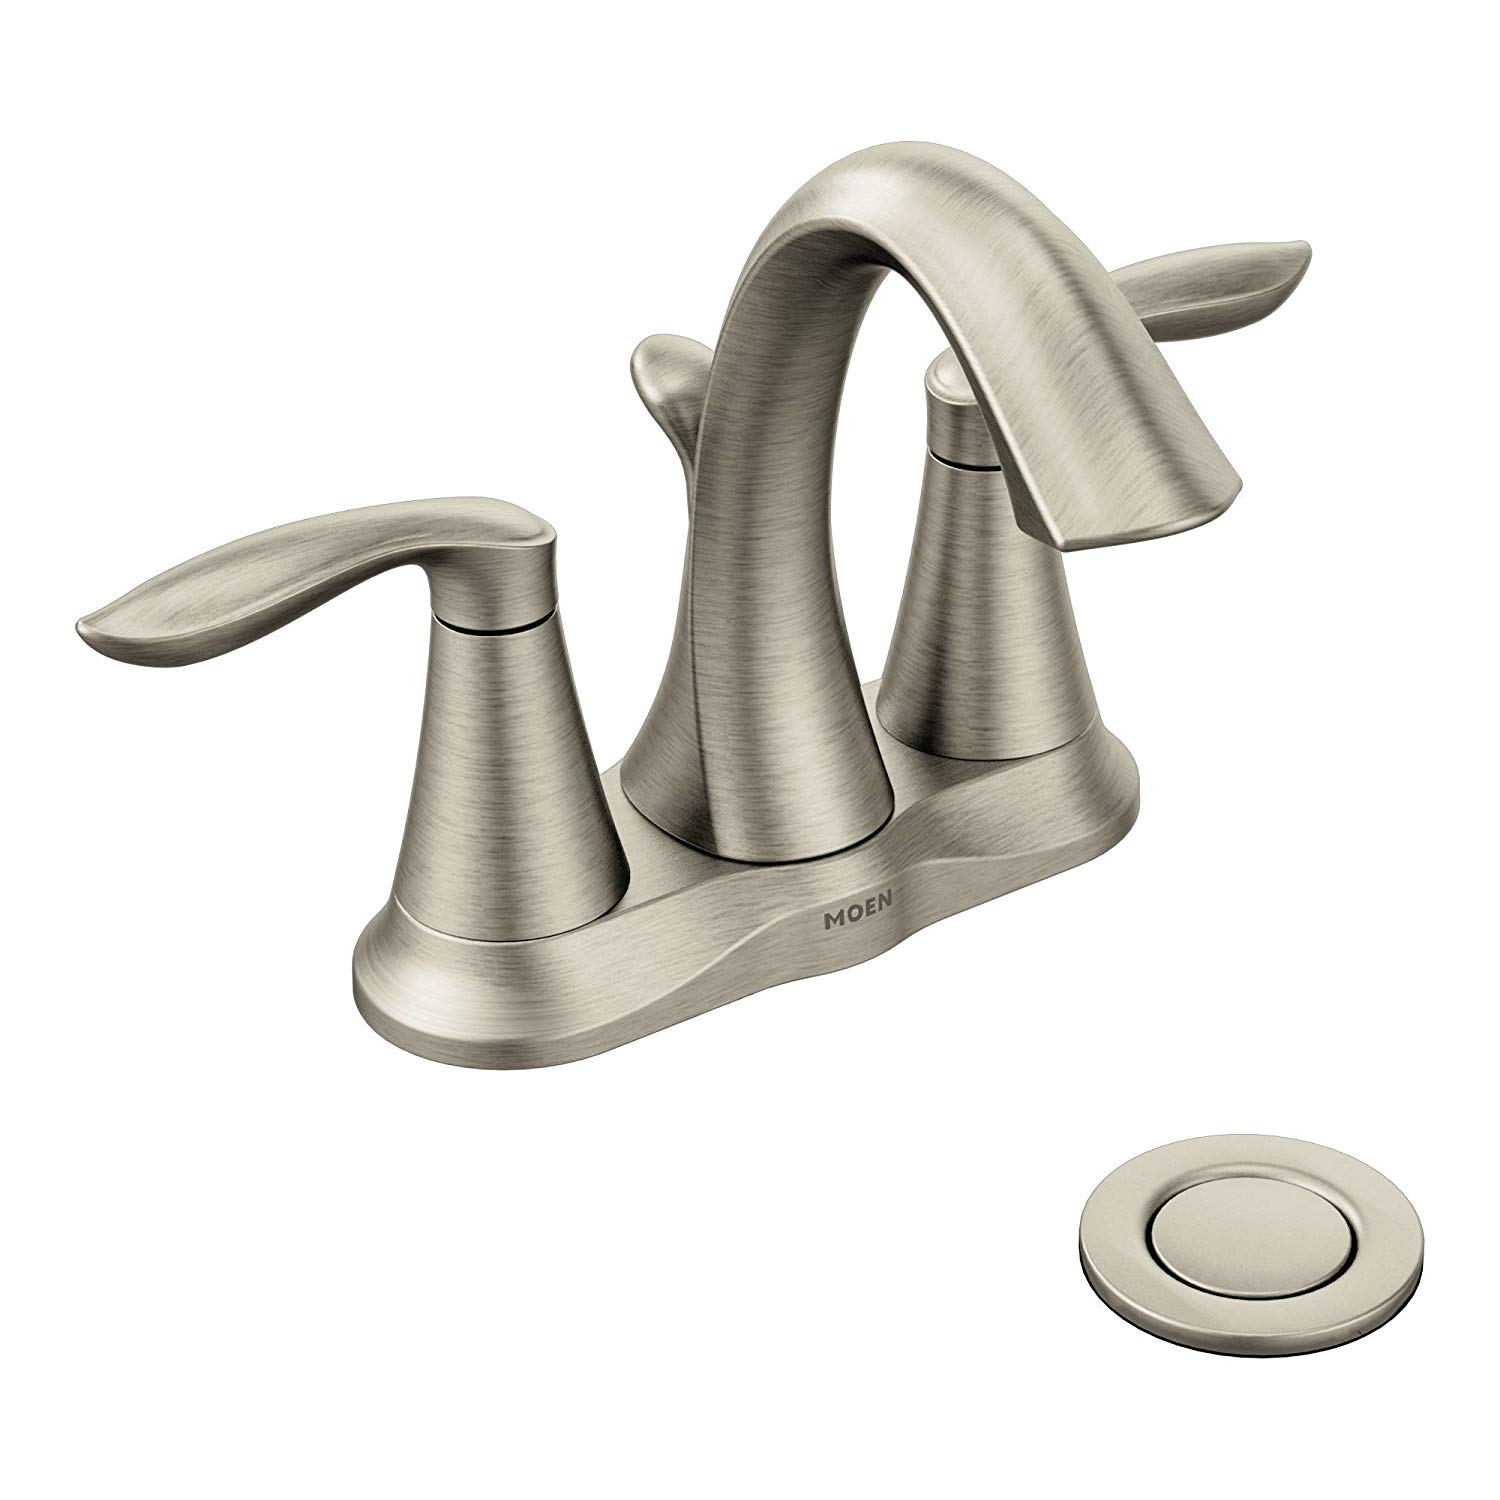 Moen Eva Two-Handle Centerset Bathroom Faucet